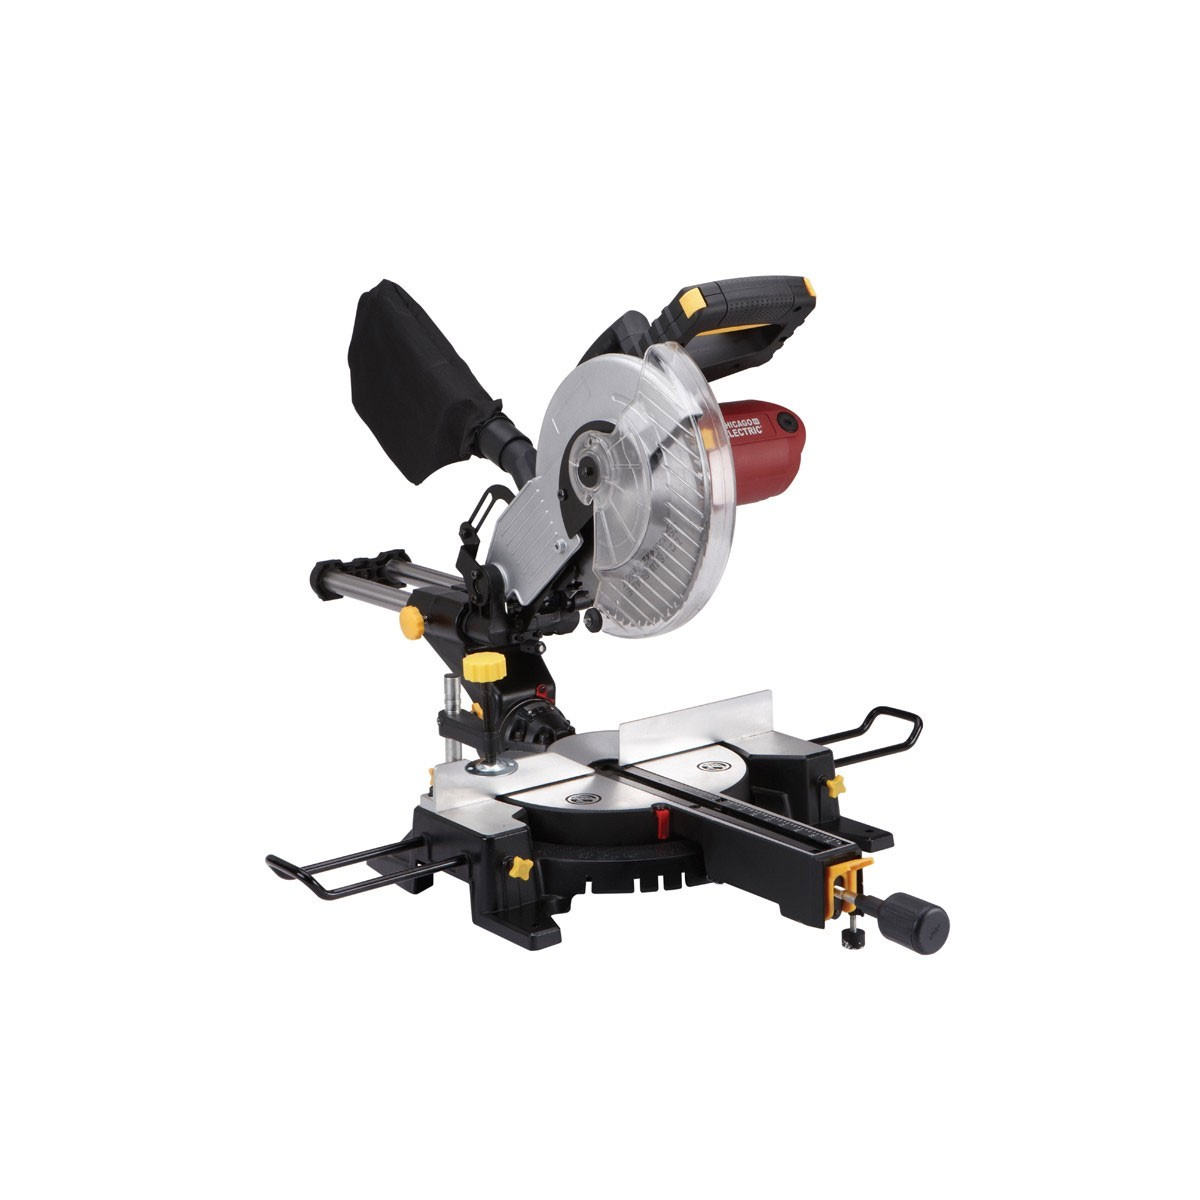 10 in. Sliding Compound Miter Saw by